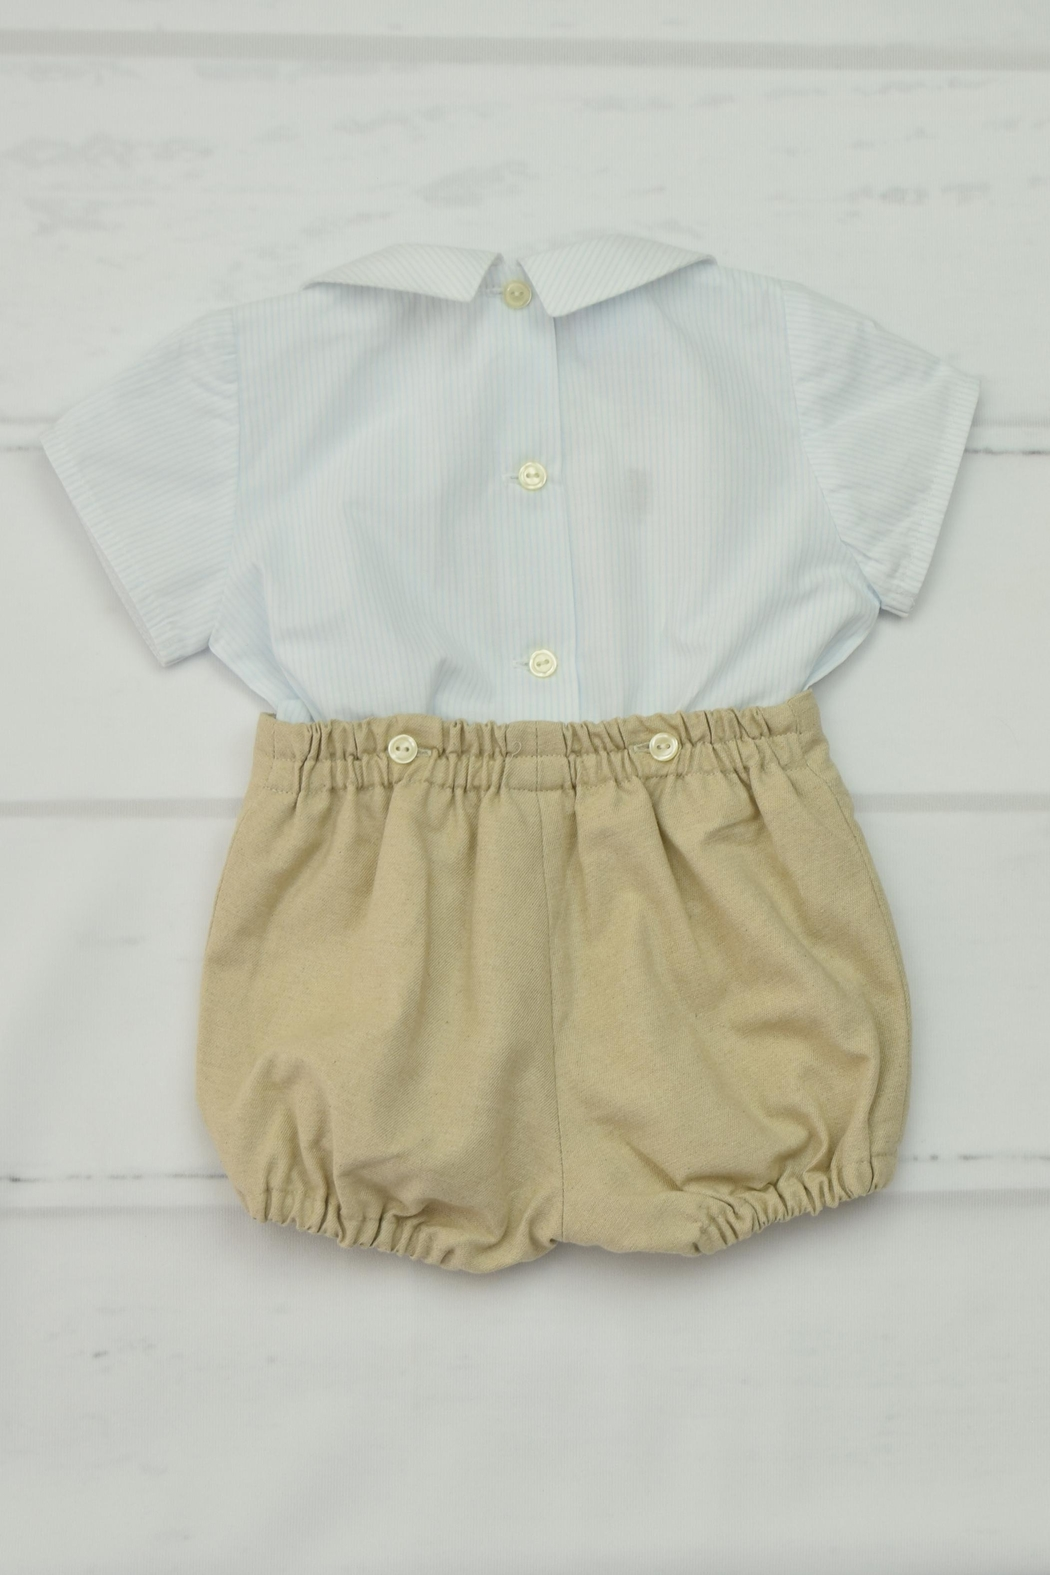 Granlei 1980 Blue & Beige Outfit - Front Full Image